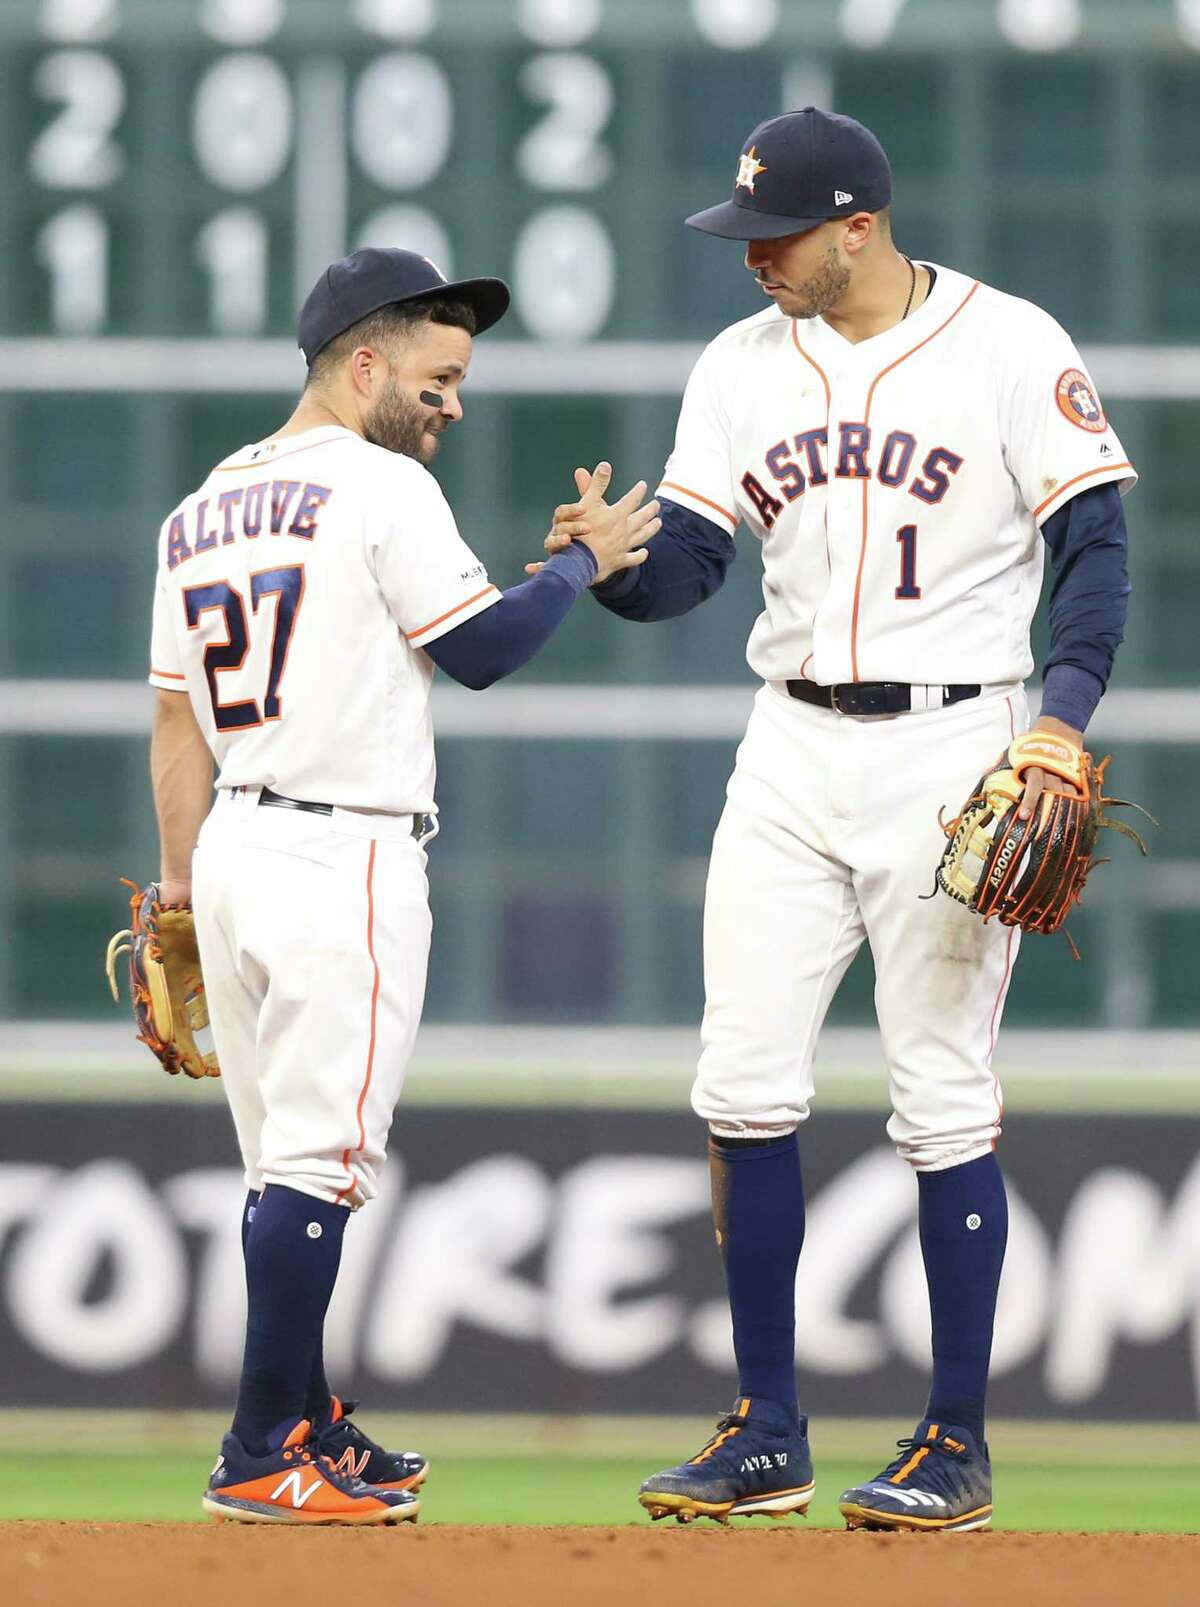 Houston Astros second baseman Jose Altuve (27) and Houston Astros shortstop Carlos Correa (1) celebrate the team's 4-3 win over New York Yankees at Minute Maid Park on Monday, April 8, 2019 in Houston. Astros won the game 4-3 and lead the series 1-0.